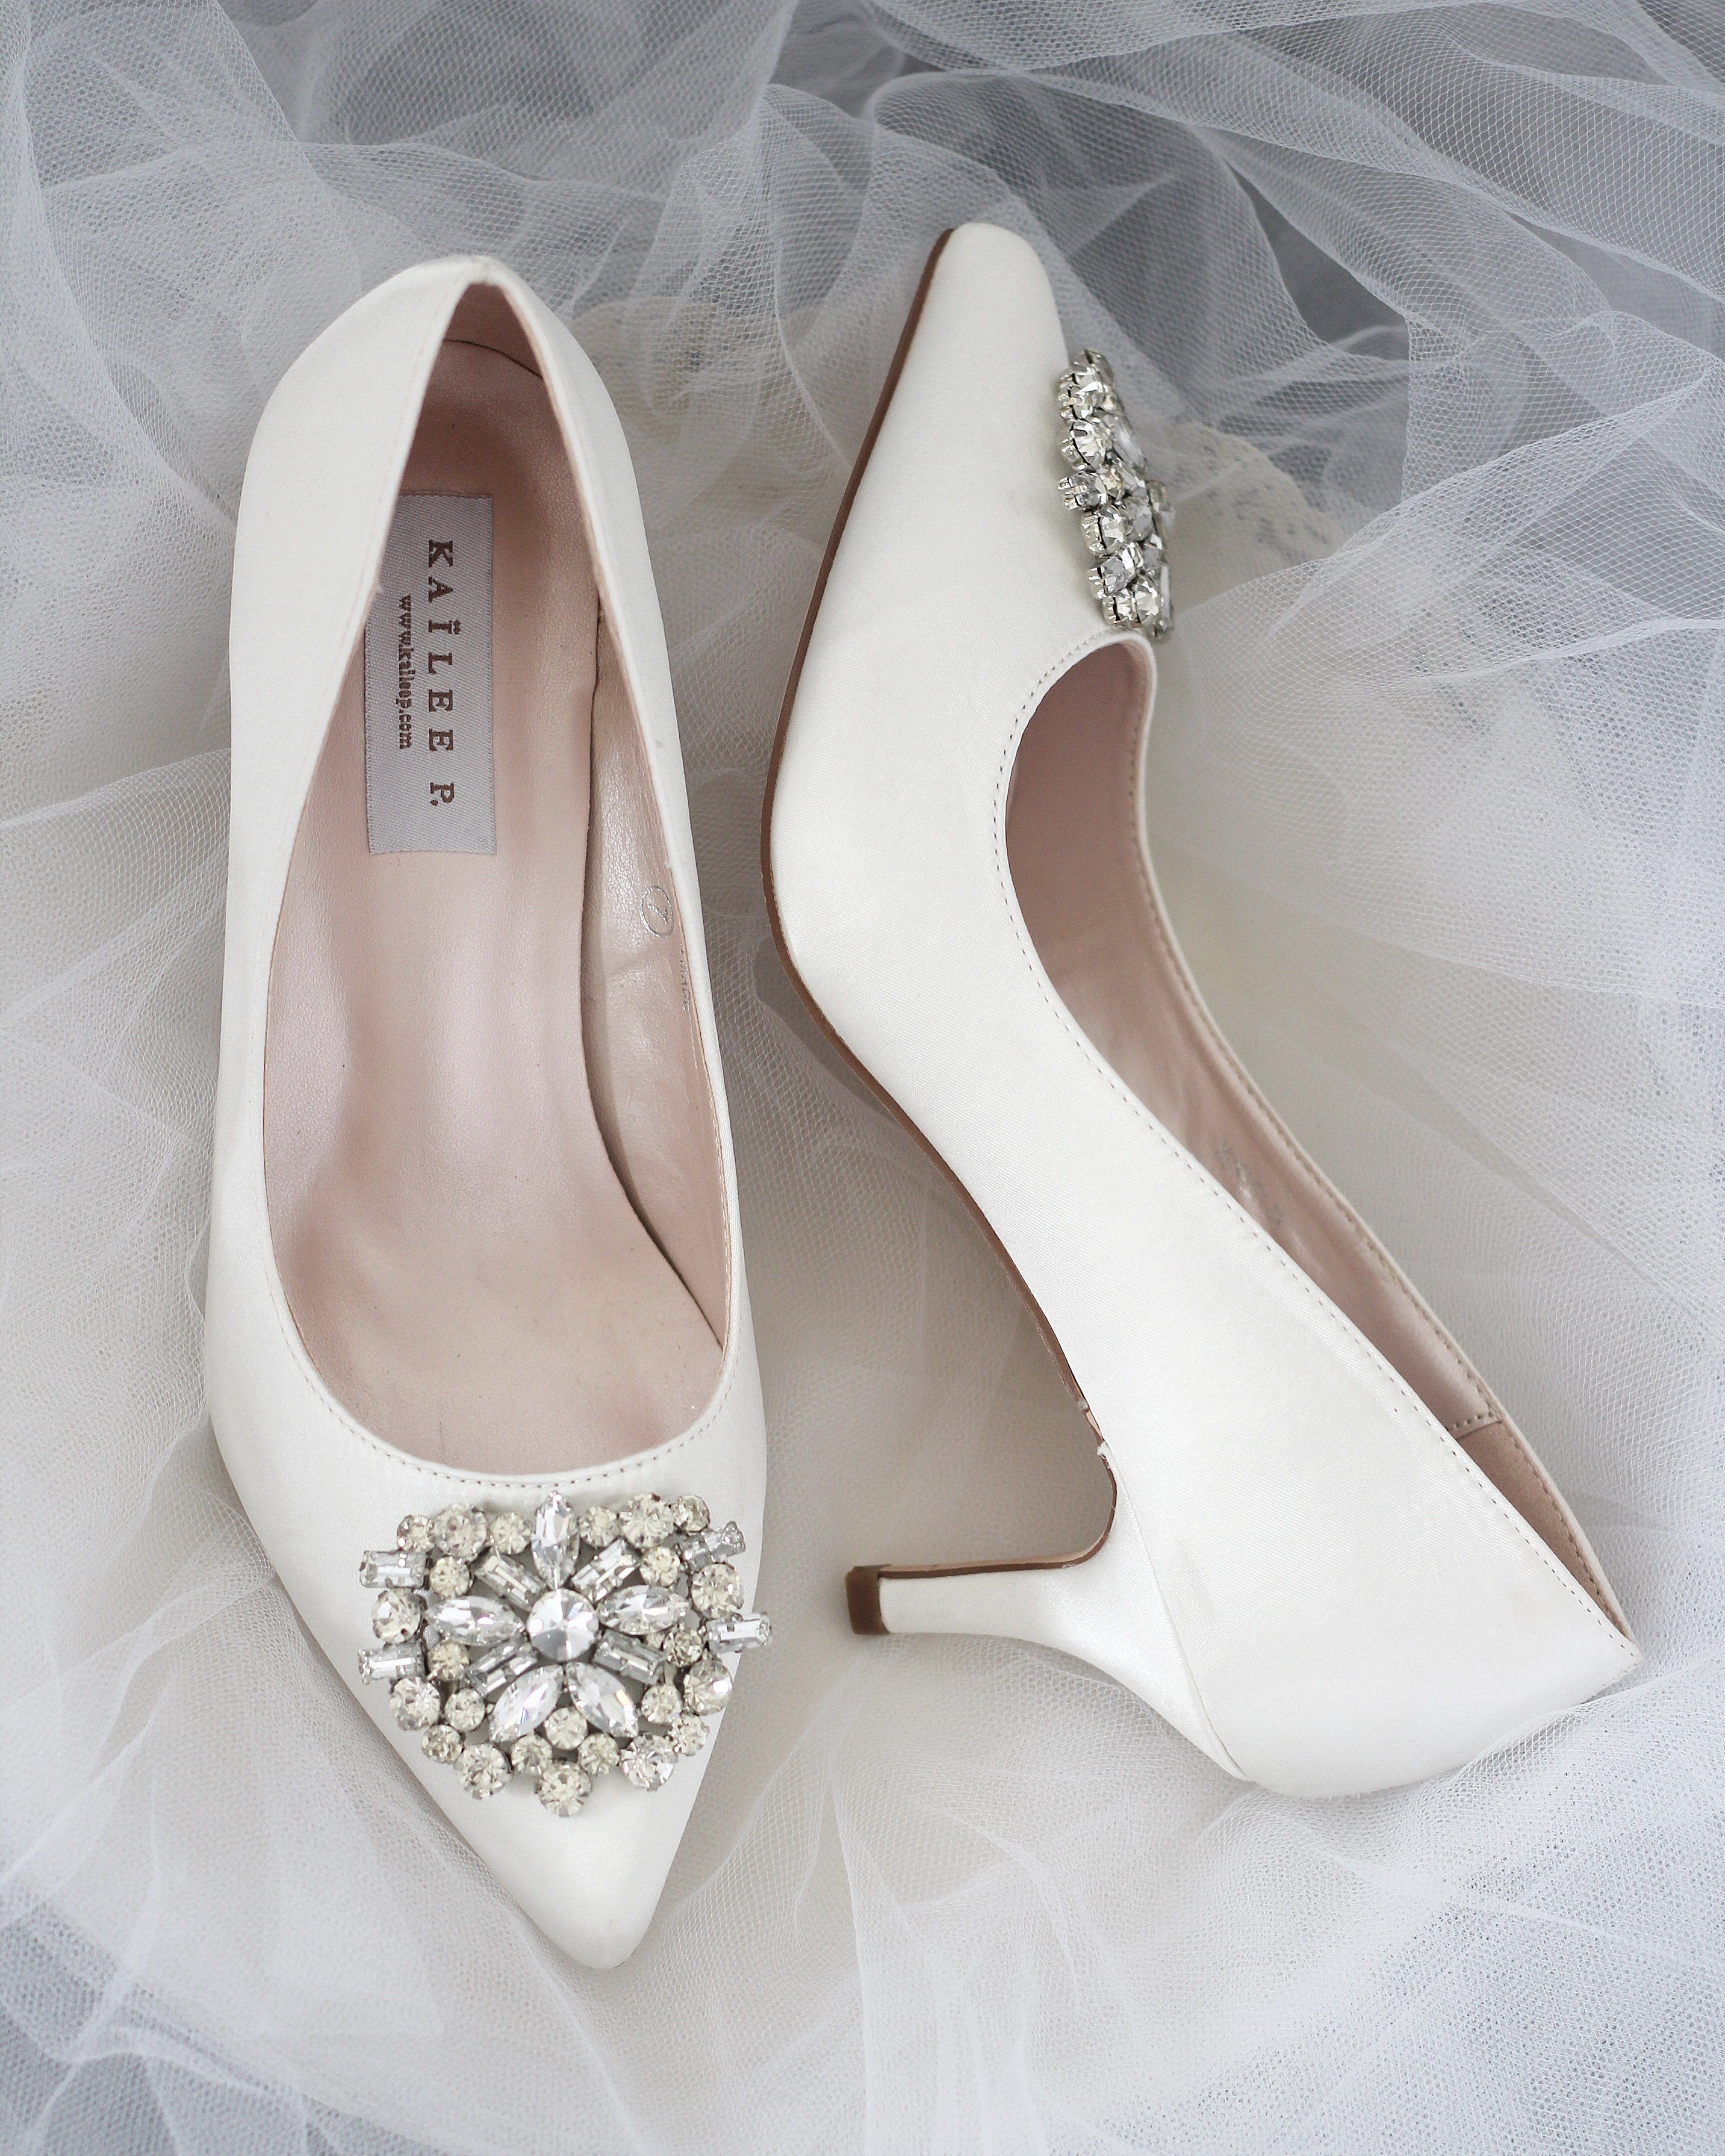 Off White Satin Pointy Toe Kitten Heel With Oversized Brooch In 2020 Bridal Shoes Low Heel Bridesmaid Shoes Bride Shoes